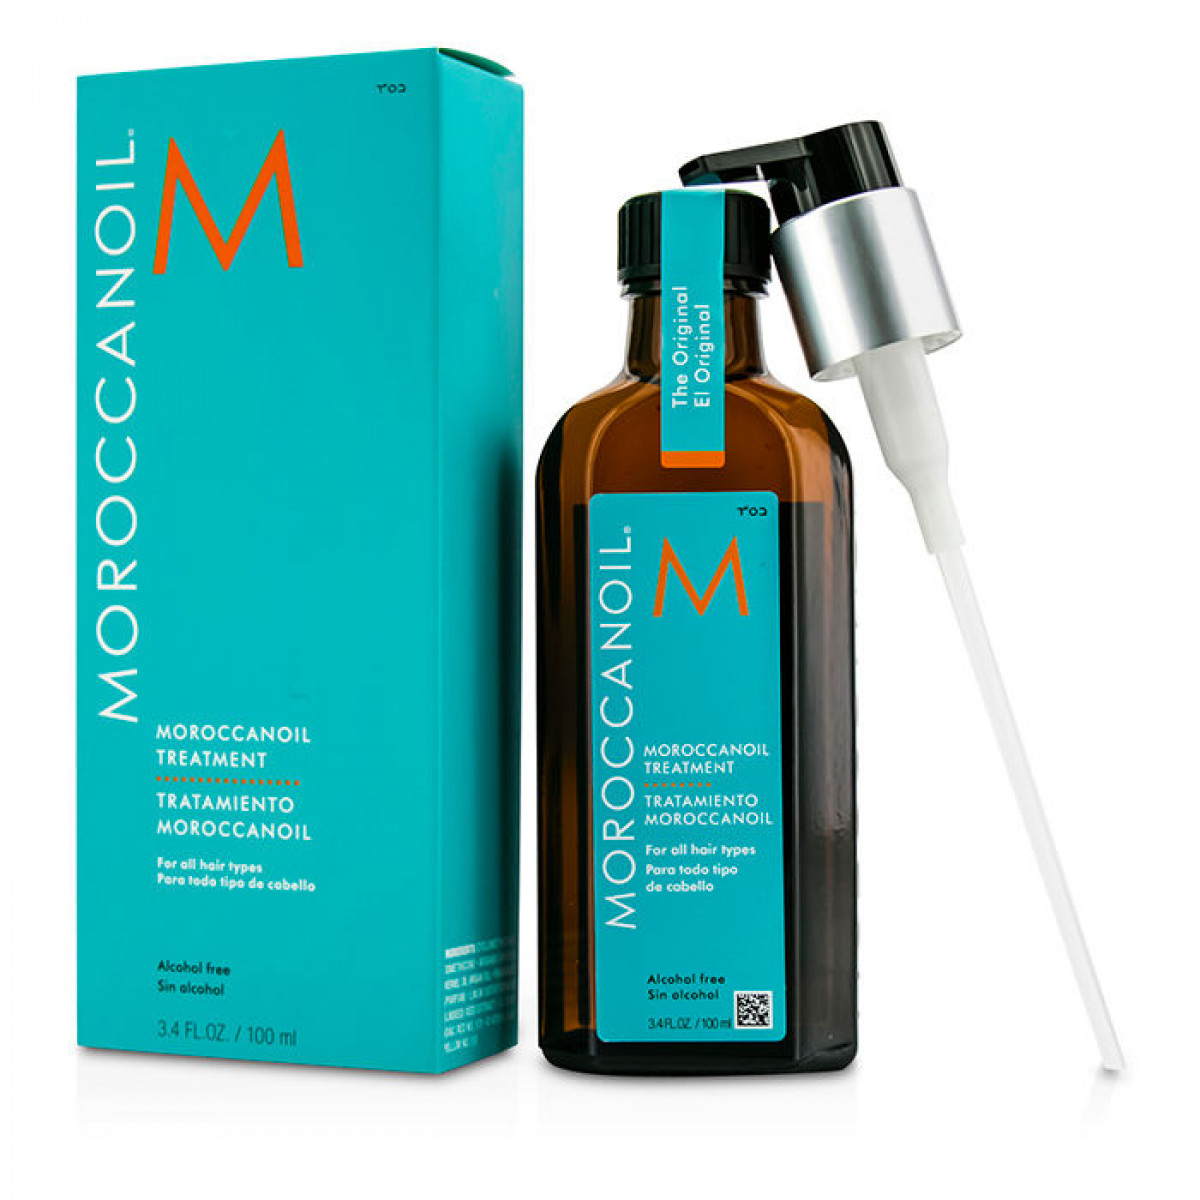 7 Moroccanoil Treatment %28100ml%29  Moroccanoil